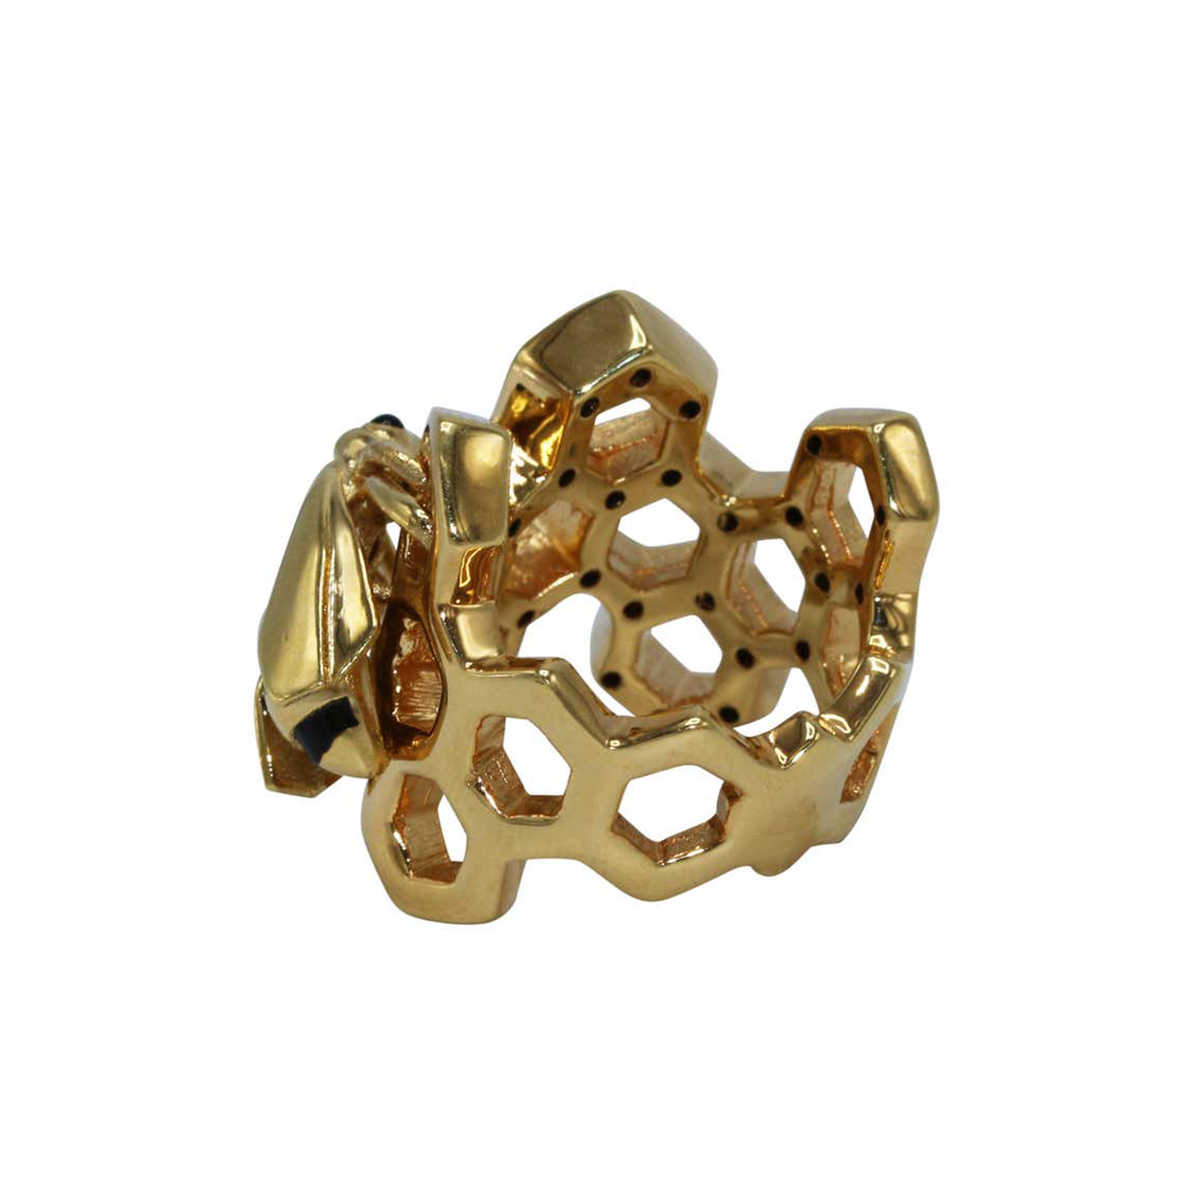 Giordana Castellan Enamel and Gold Honeycomb and Bee Ring